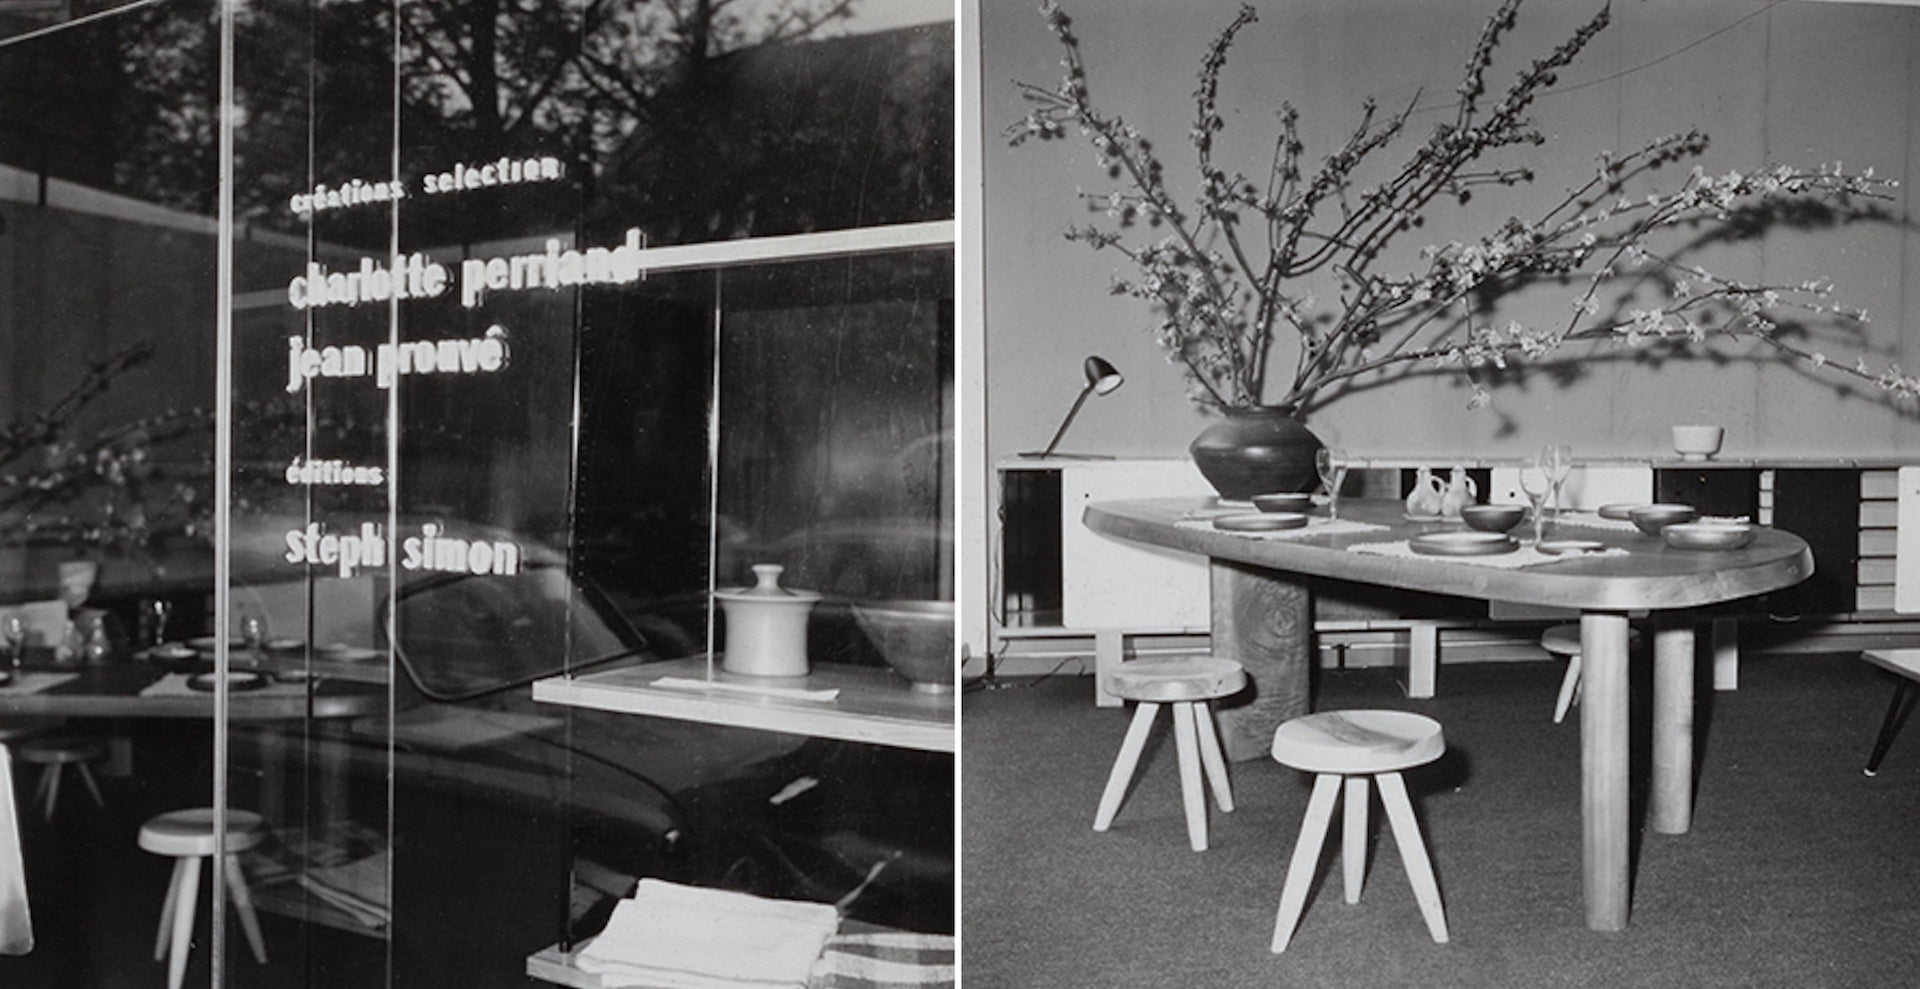 Vintage photographs of Steph Simon Gallery. Courtesy of LAFFANOUR-Galerie Downtown